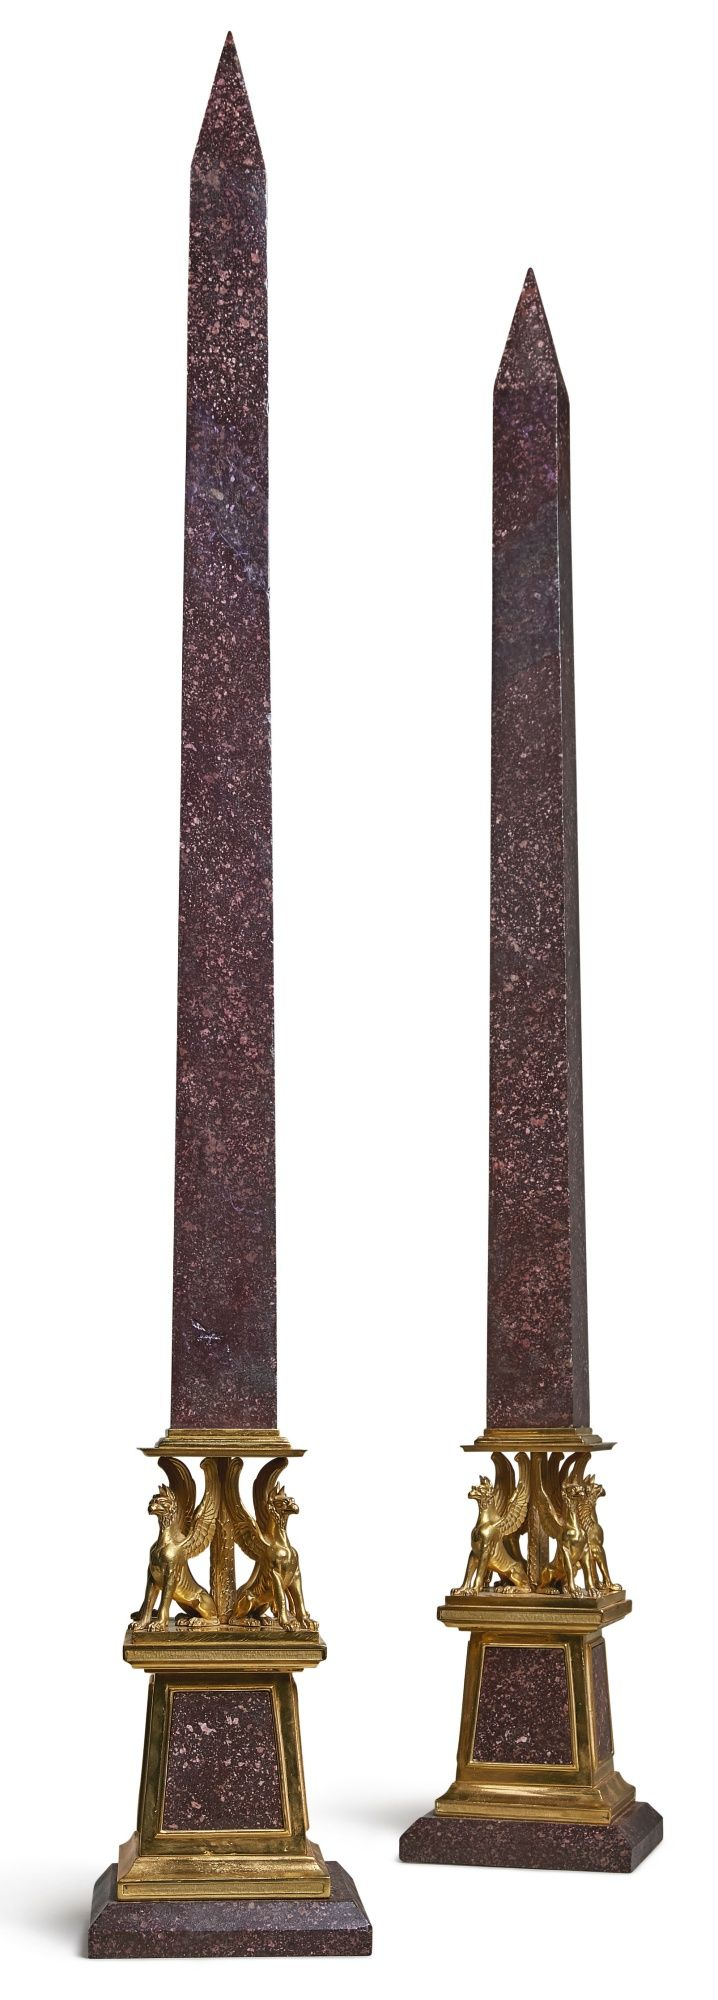 A pair of Italian Neoclassical gilt bronze and porphyry obelisks, early 19th century ||| sotheby's